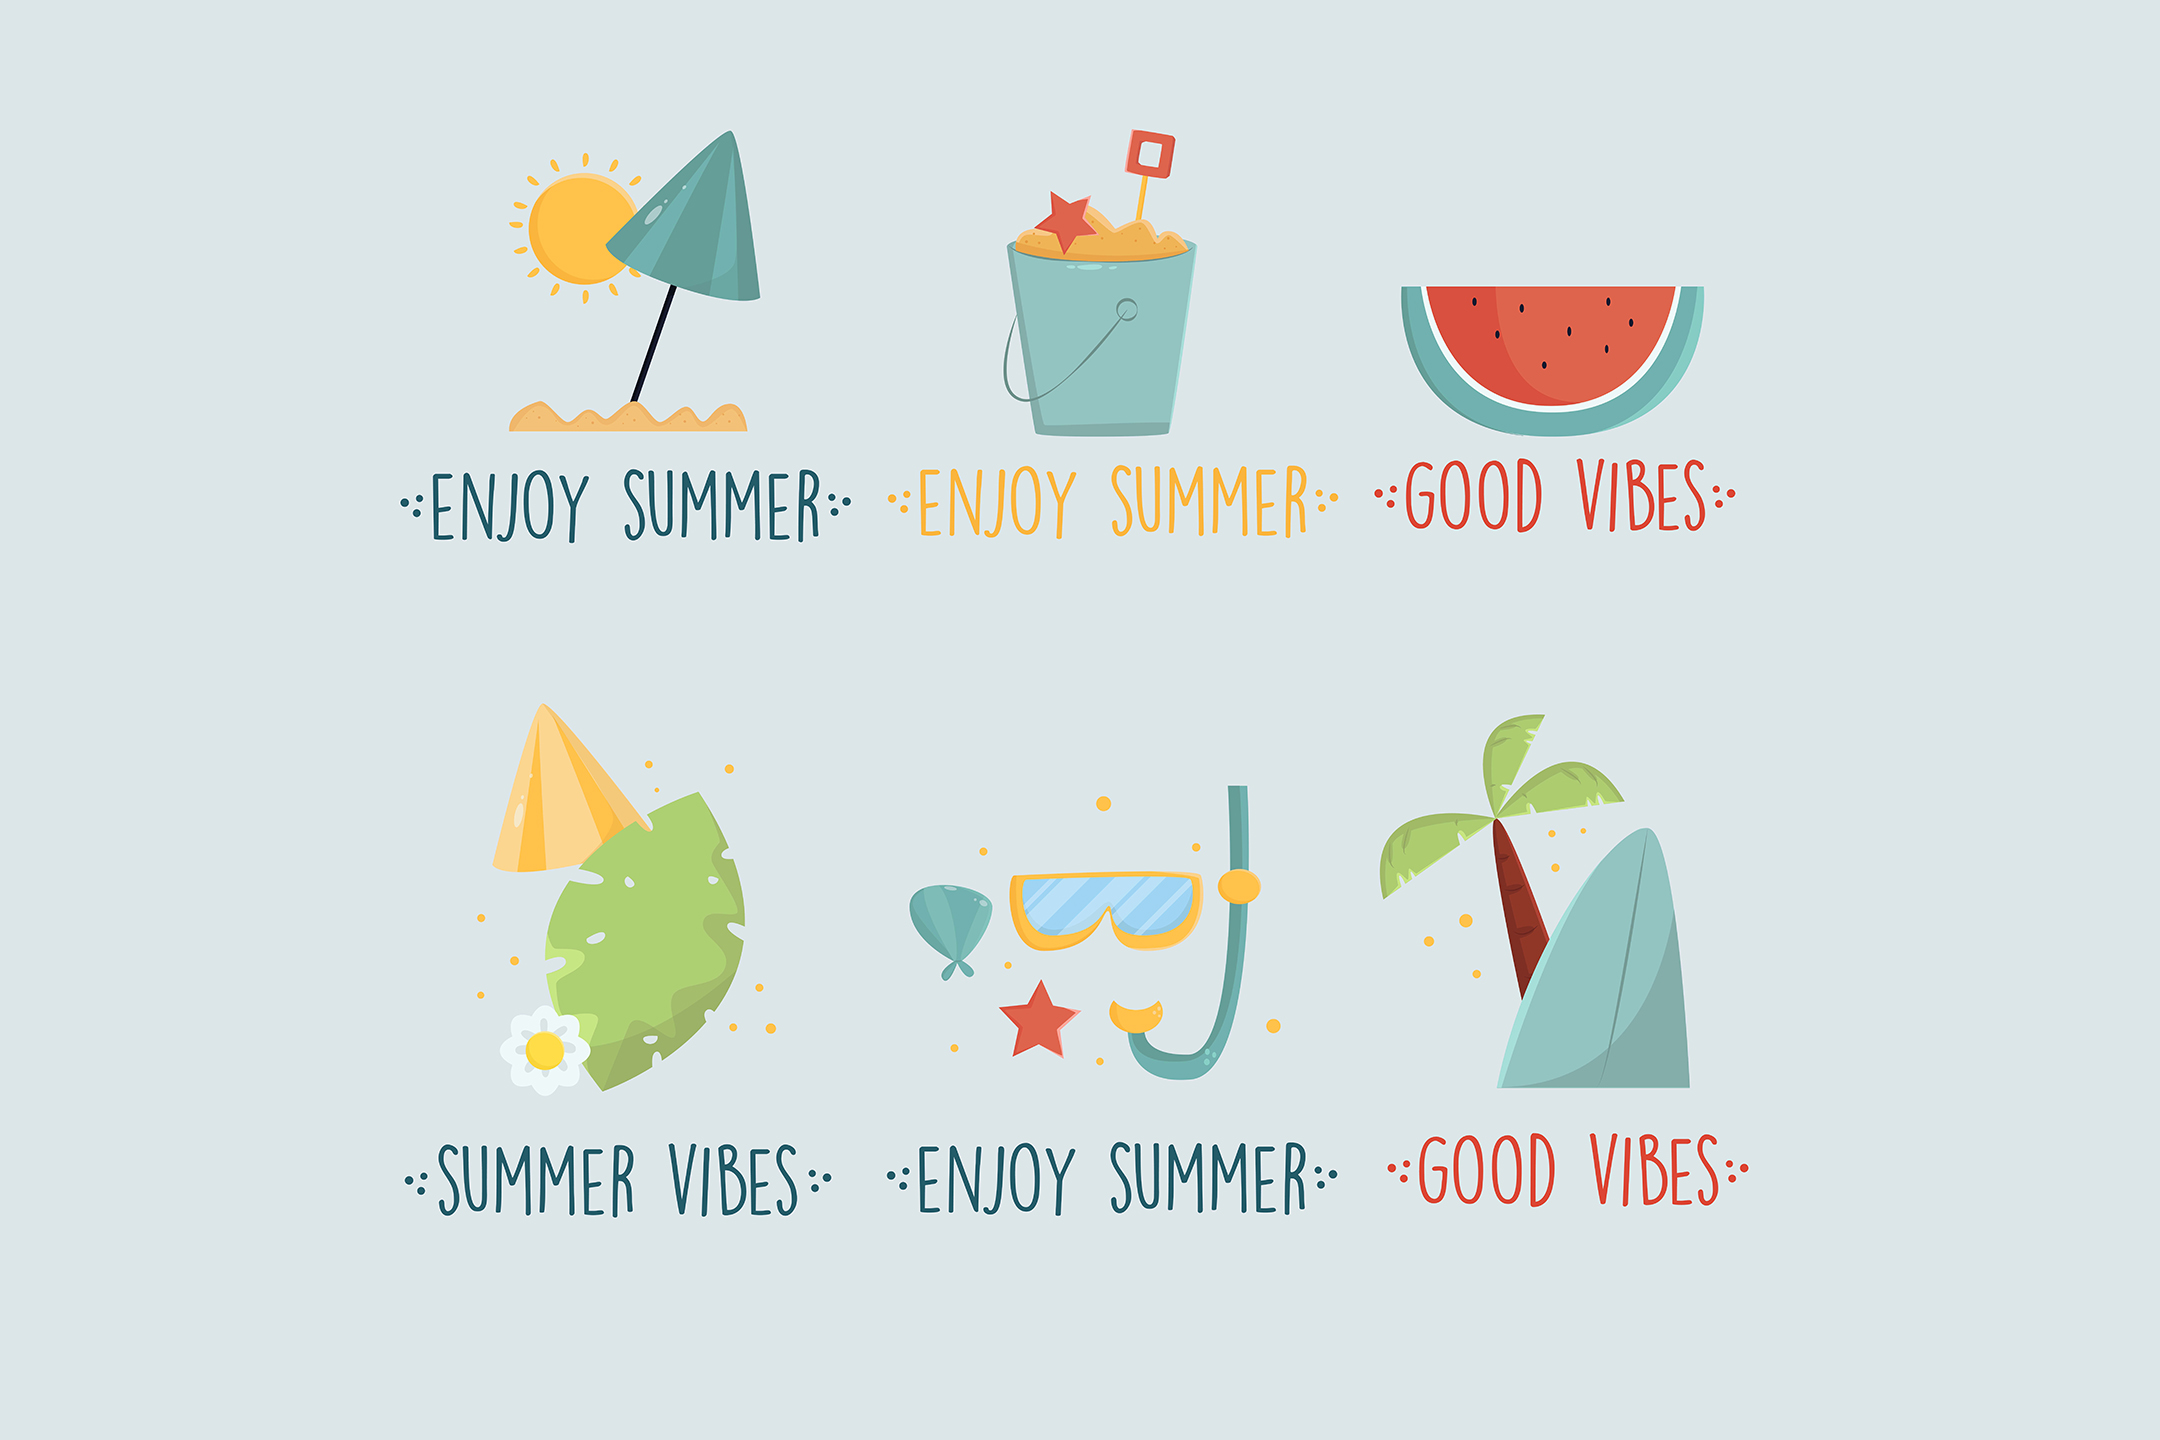 Download Free Summer Labels Hand Drawn 1 Graphic By Aprlmp276 Creative Fabrica for Cricut Explore, Silhouette and other cutting machines.